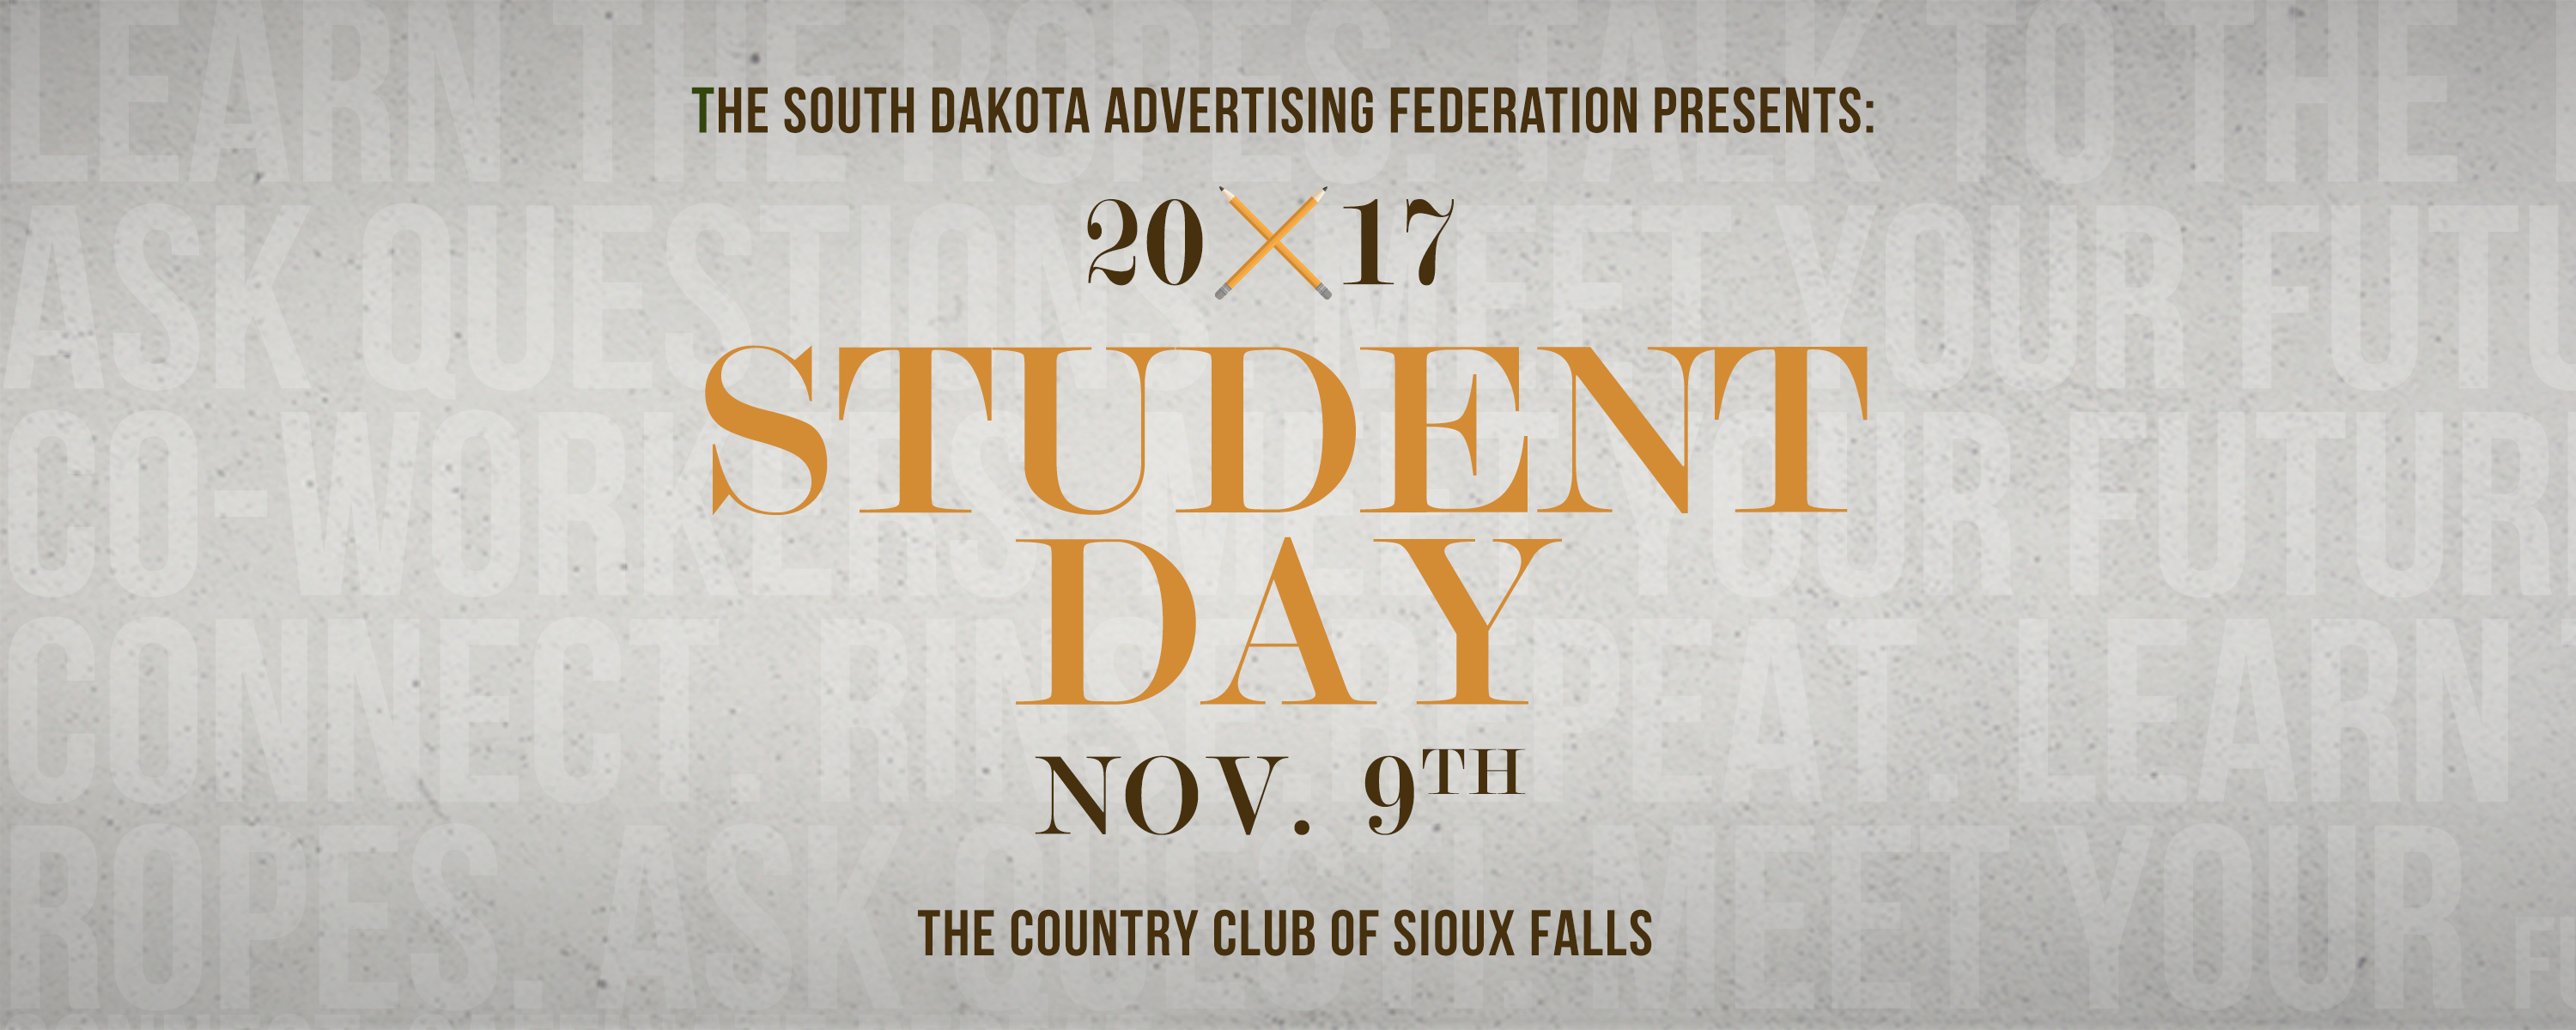 SDAF Student Day Sioux Falls